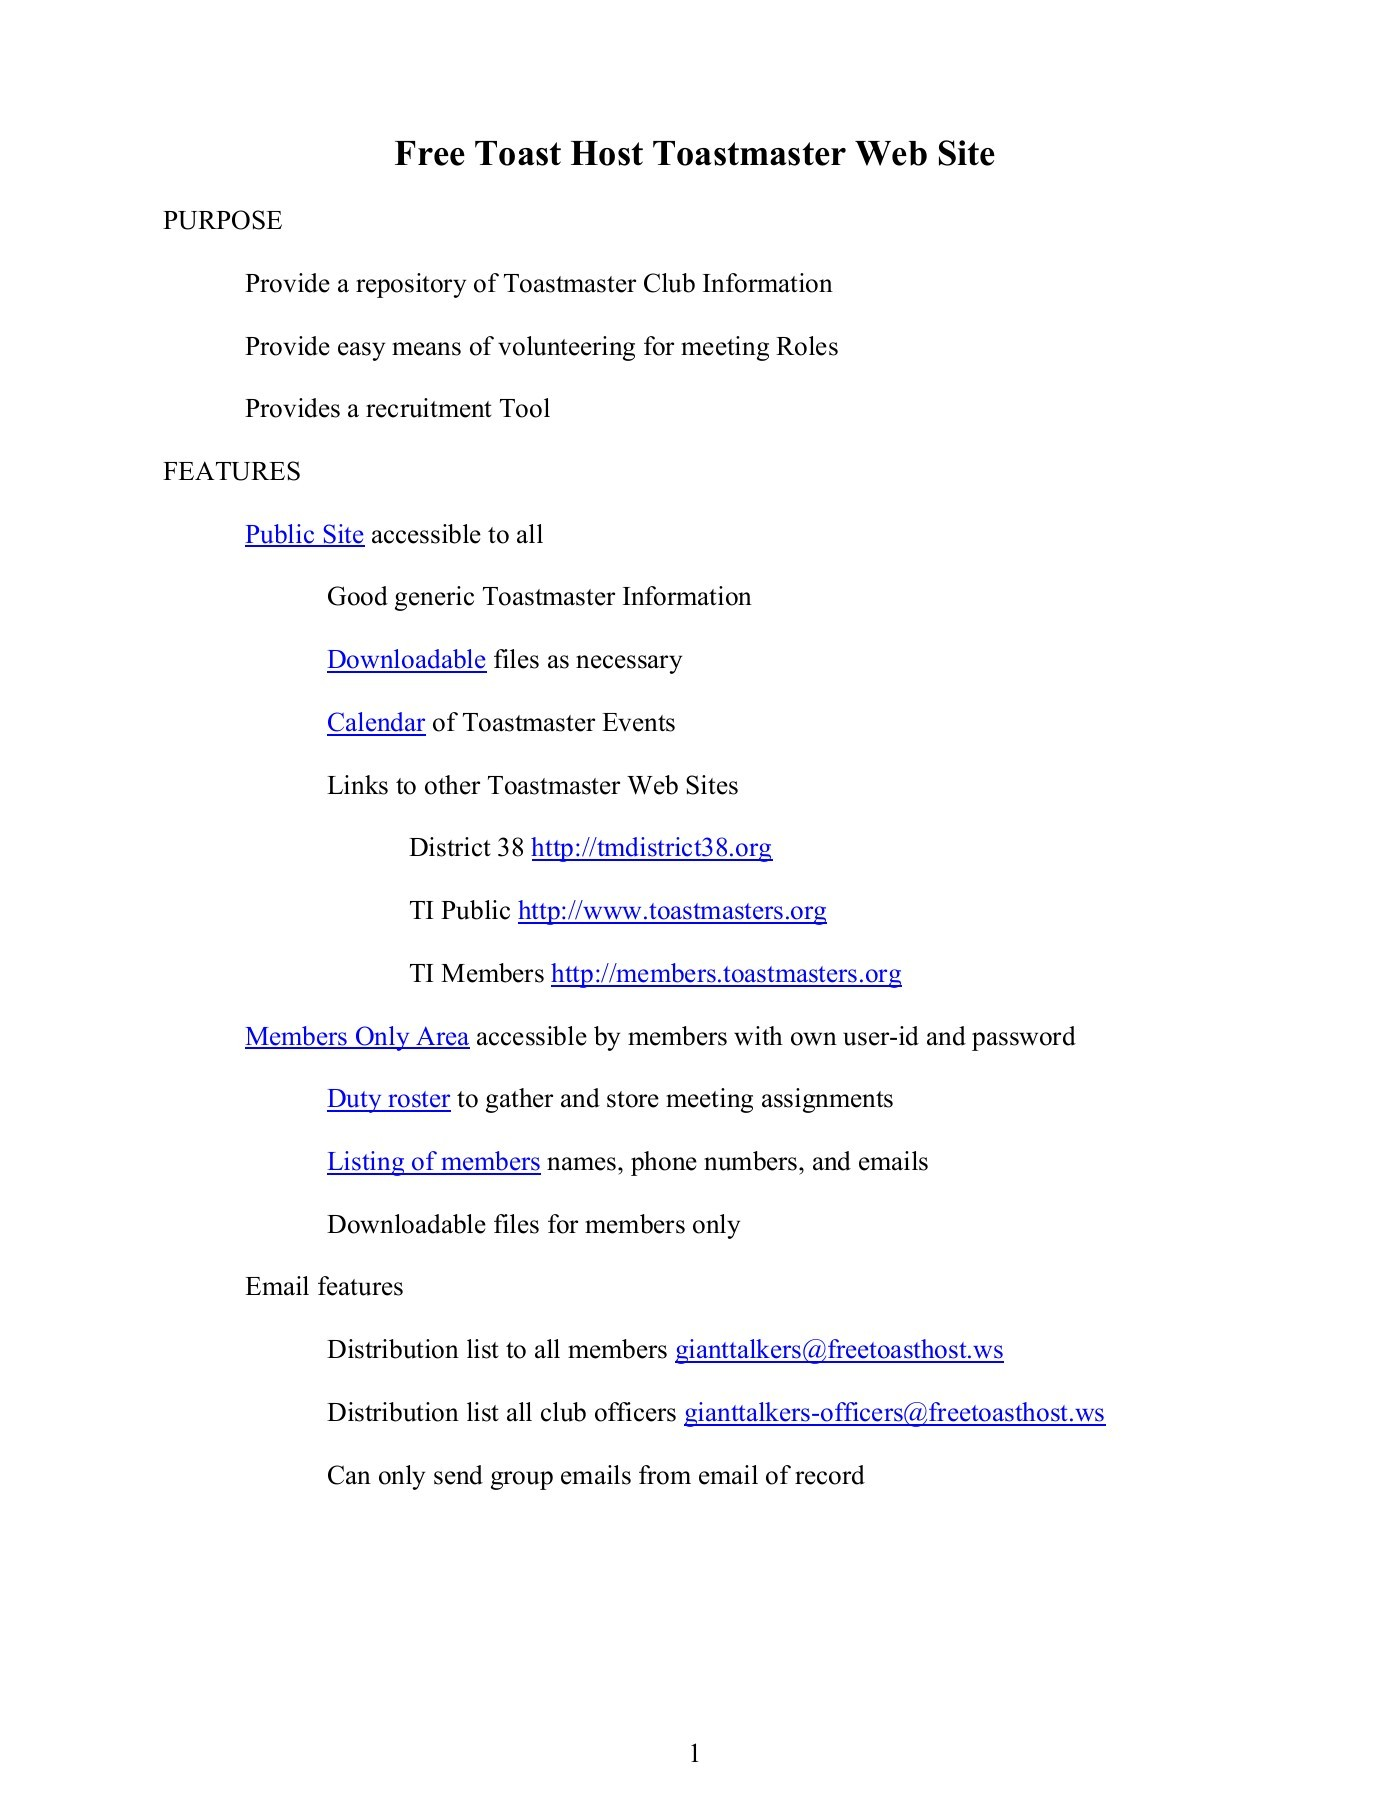 hight resolution of free toast host toastmaster web site pages 1 23 text version fliphtml5